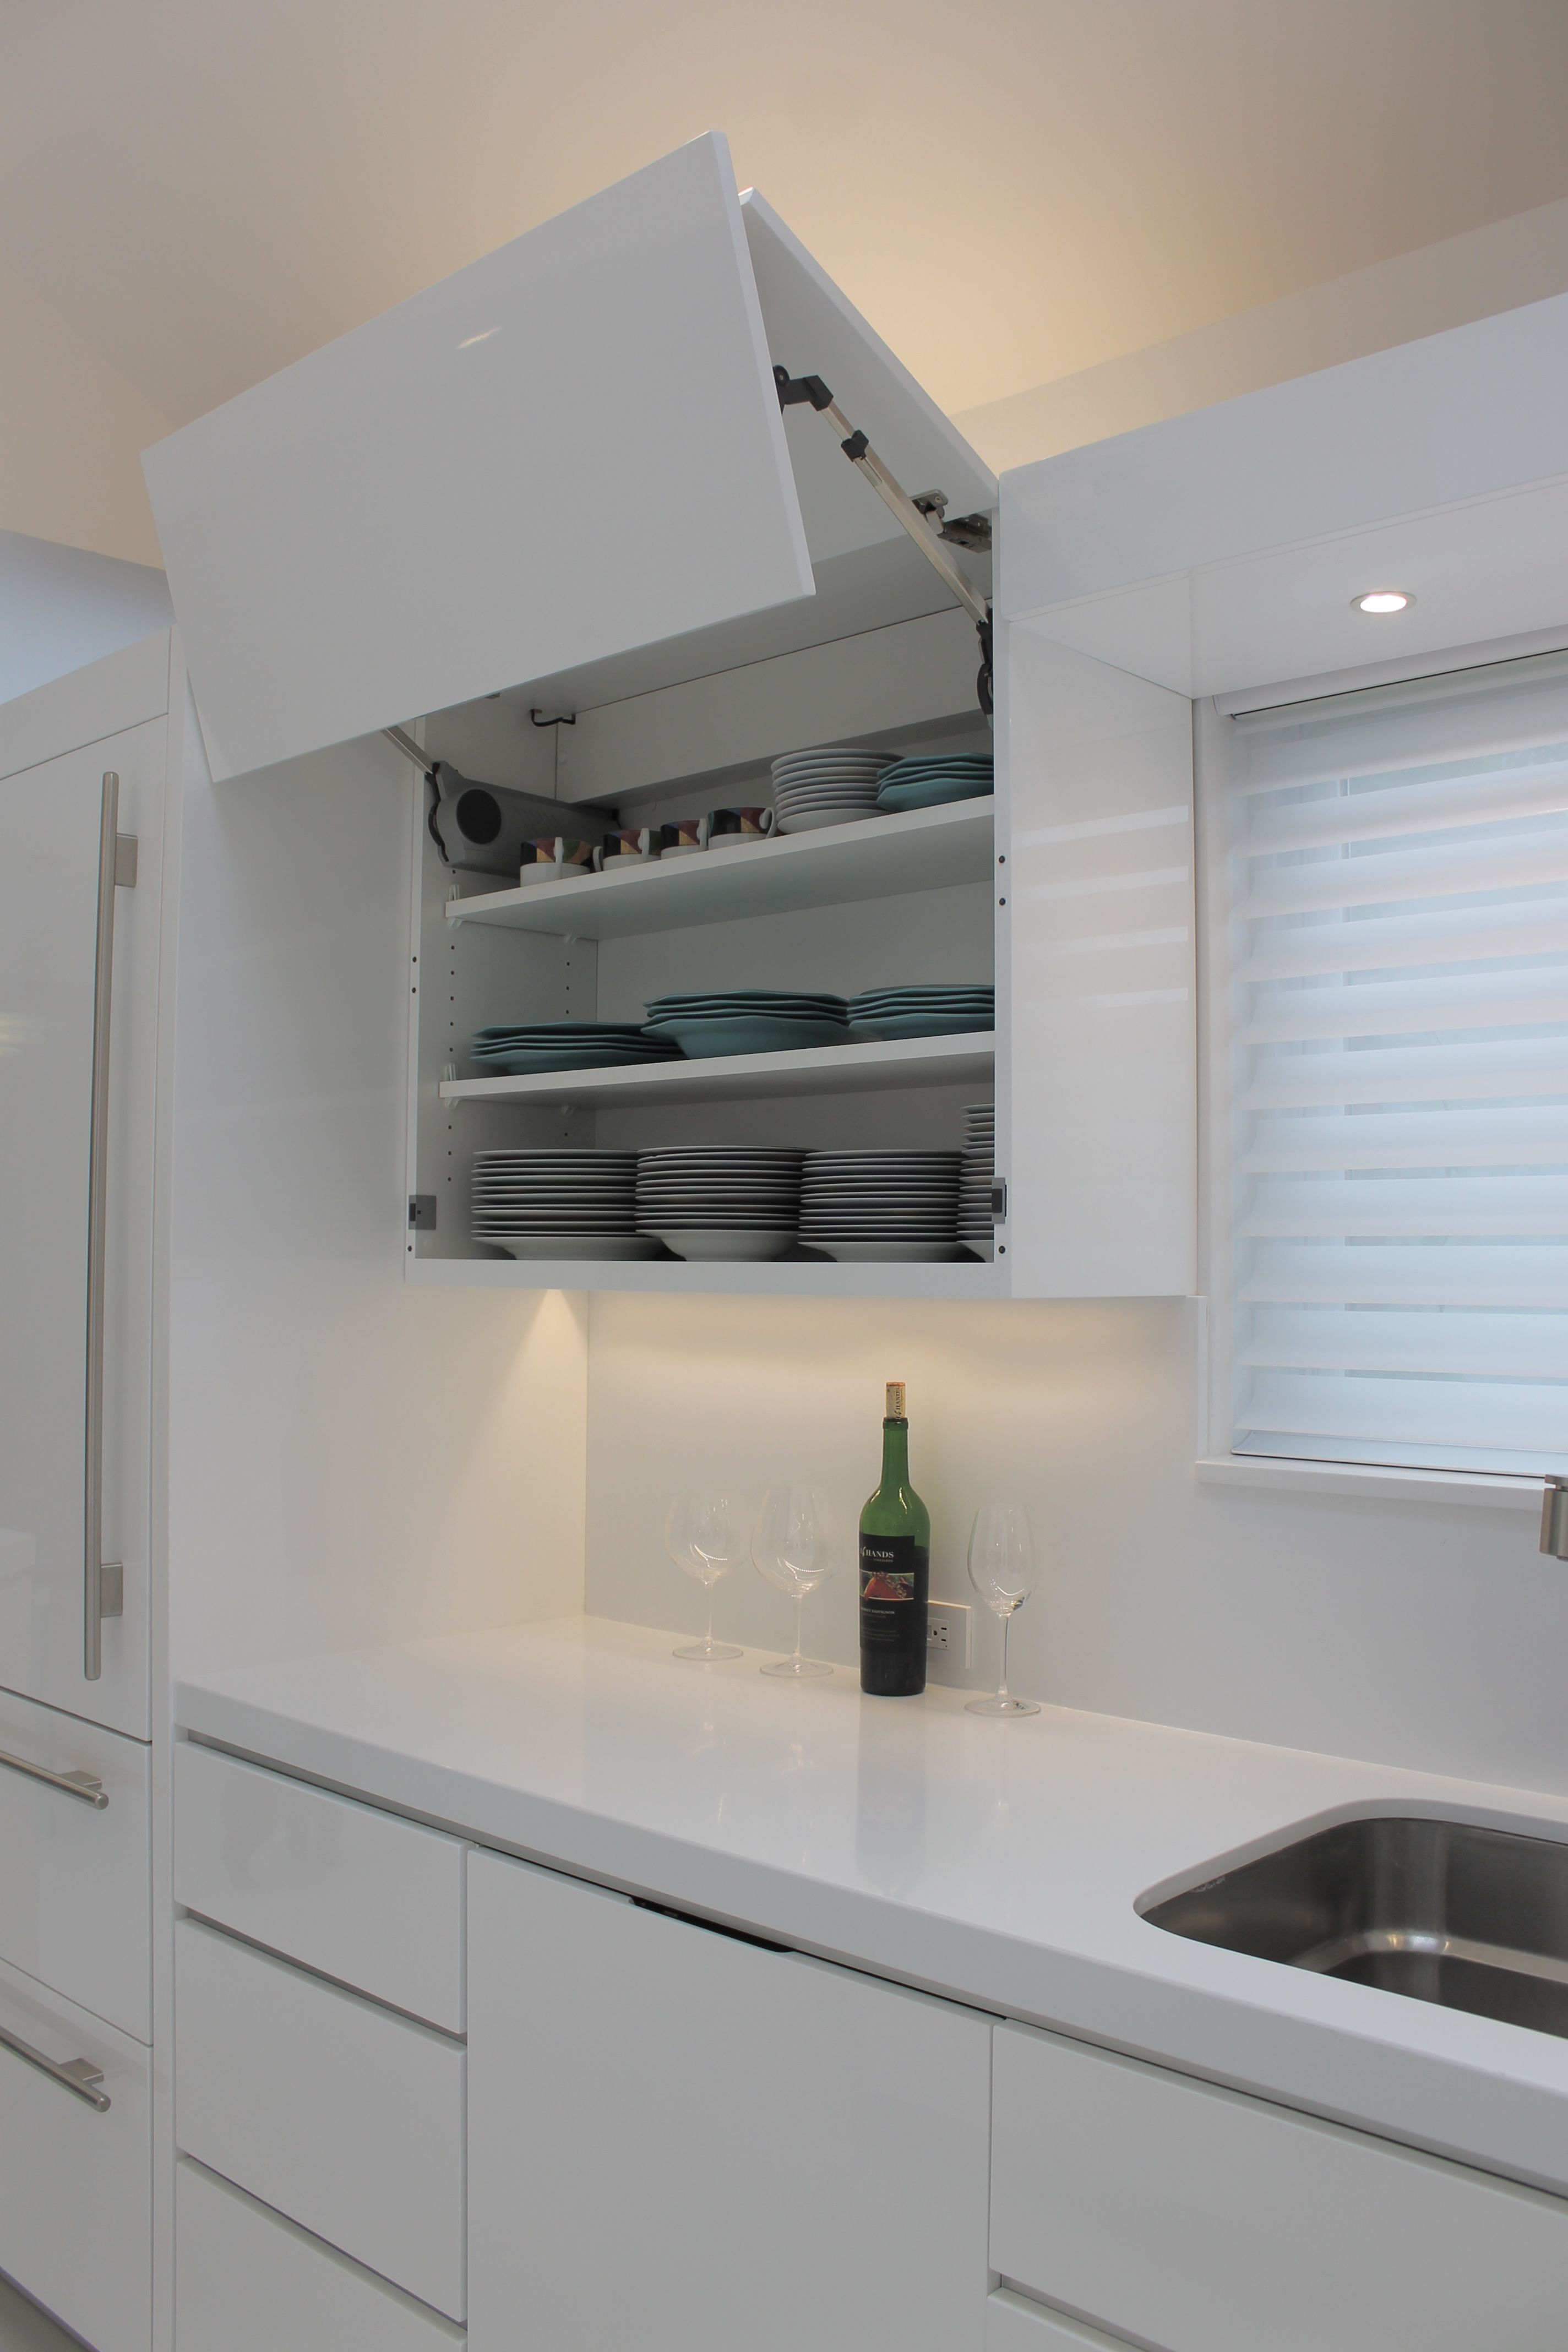 Lift Up Cabinet Door Custom Electric Lift Up Cabinets Just A Touch Of The Cabinet Door